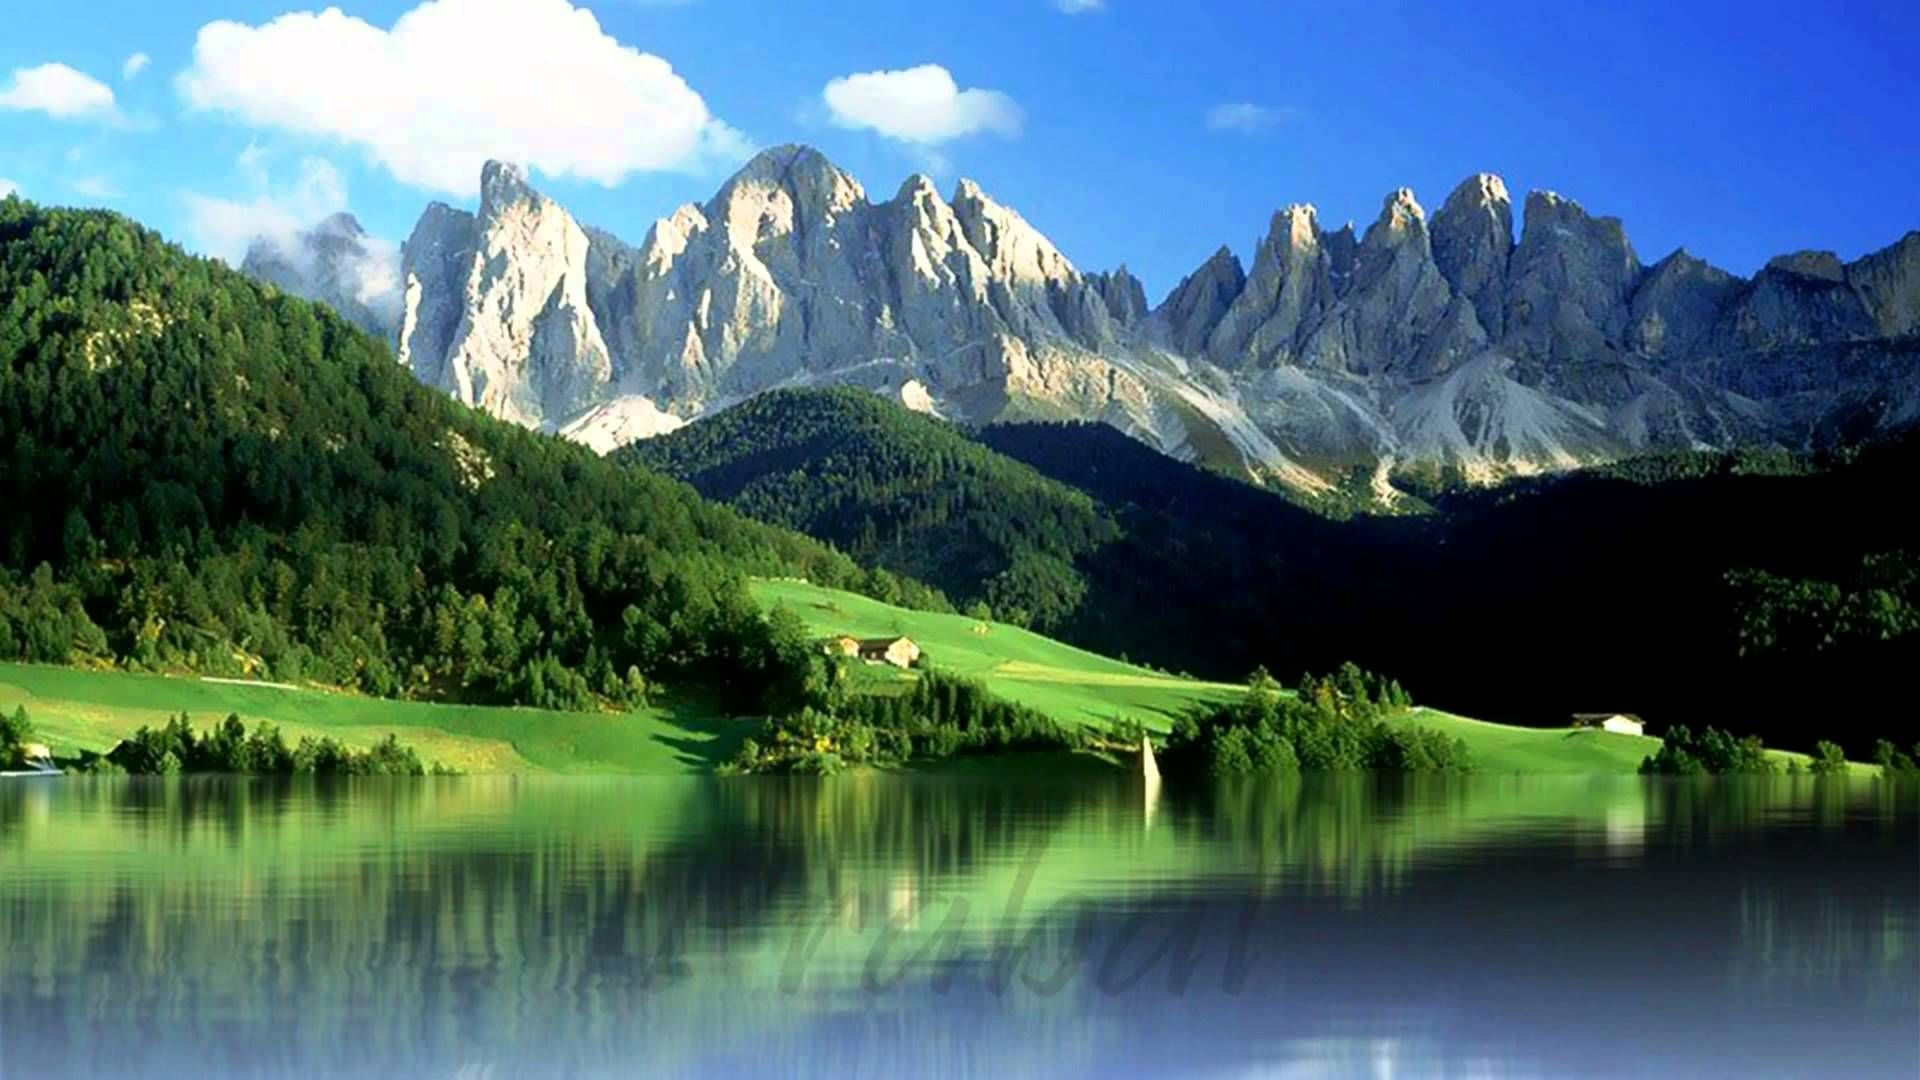 Peace background picture hd